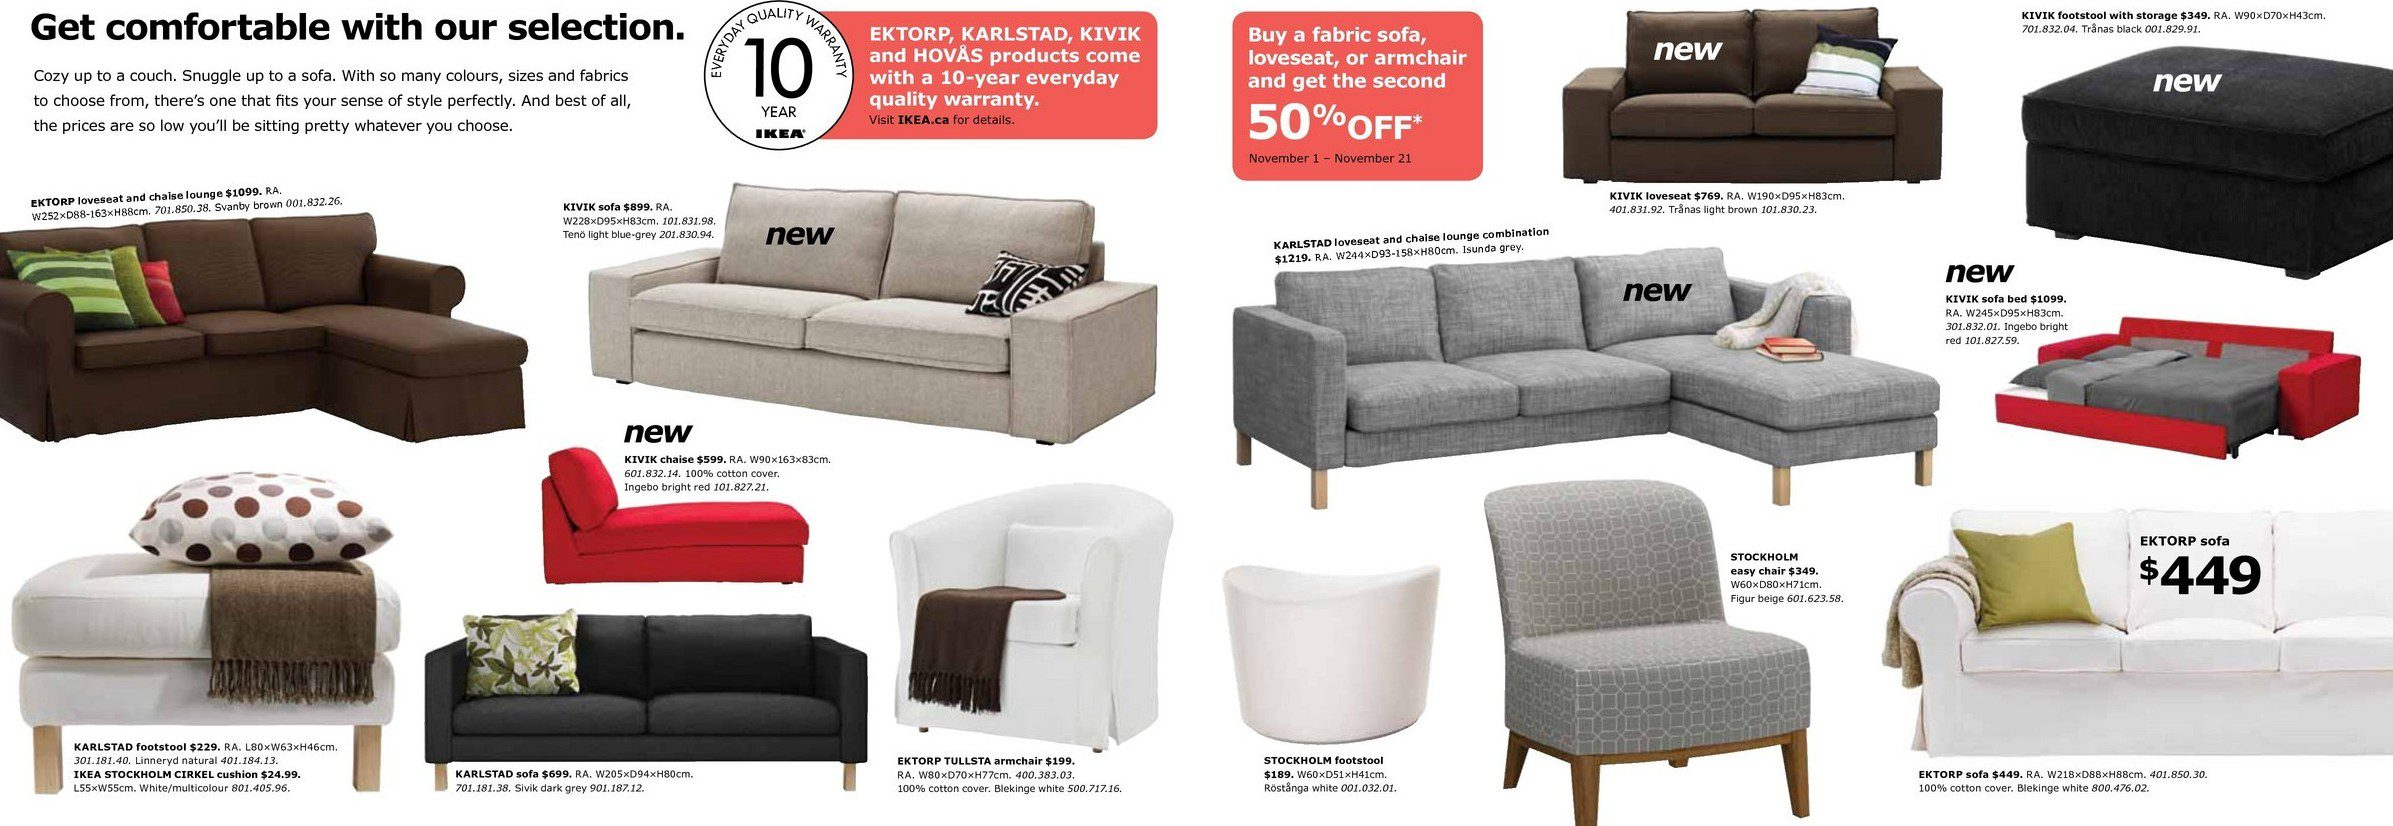 CANADA 50 Off Your 2nd Fabric Sofa Purchase At IKEA Comfort Works Blog amp Design Inspirations